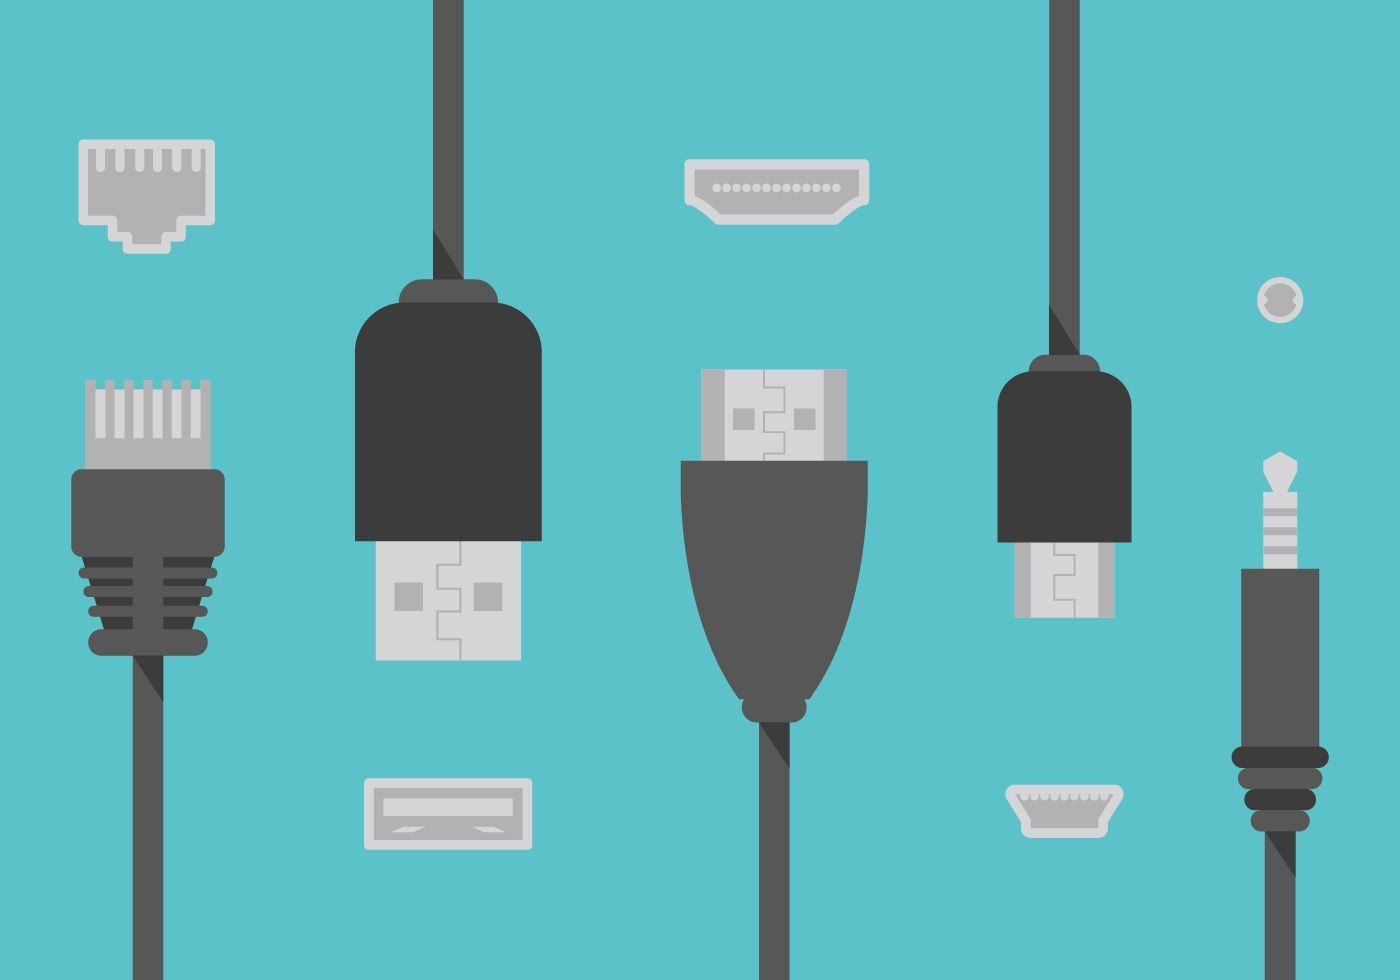 Hdmi Cable Wire Flat Illustration Vector - Download Free Vector Art ...